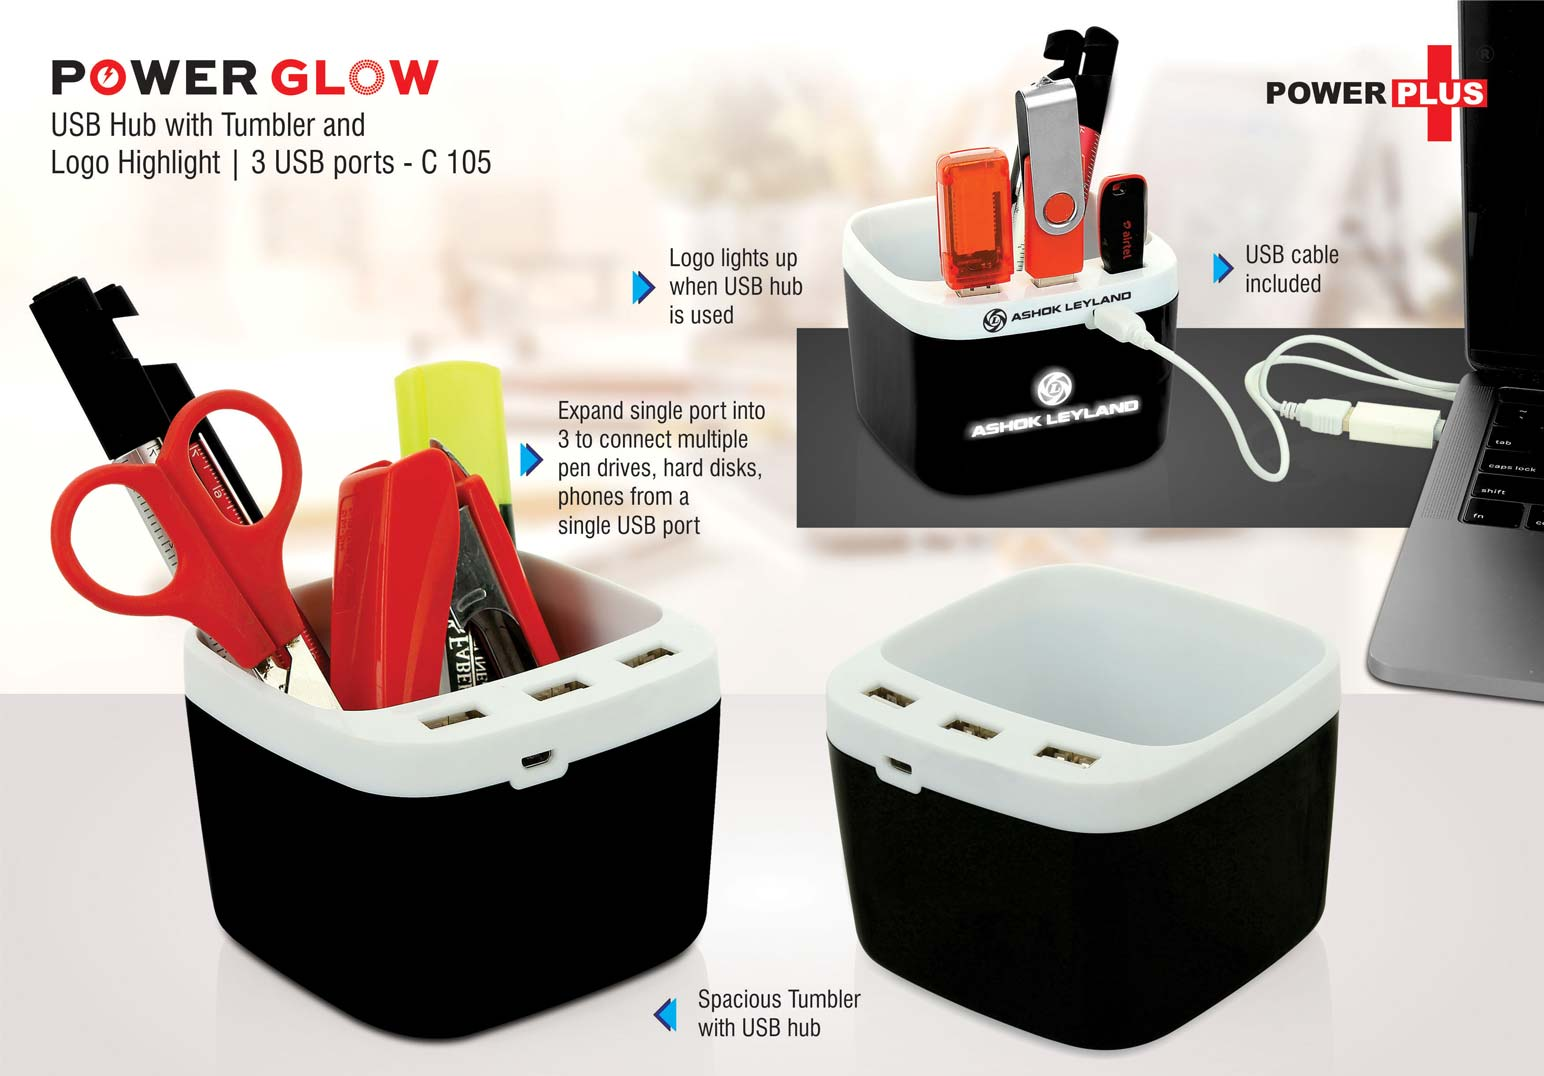 C105 - PowerGlow USB hub with tumbler and logo highlight | 3 USB ports